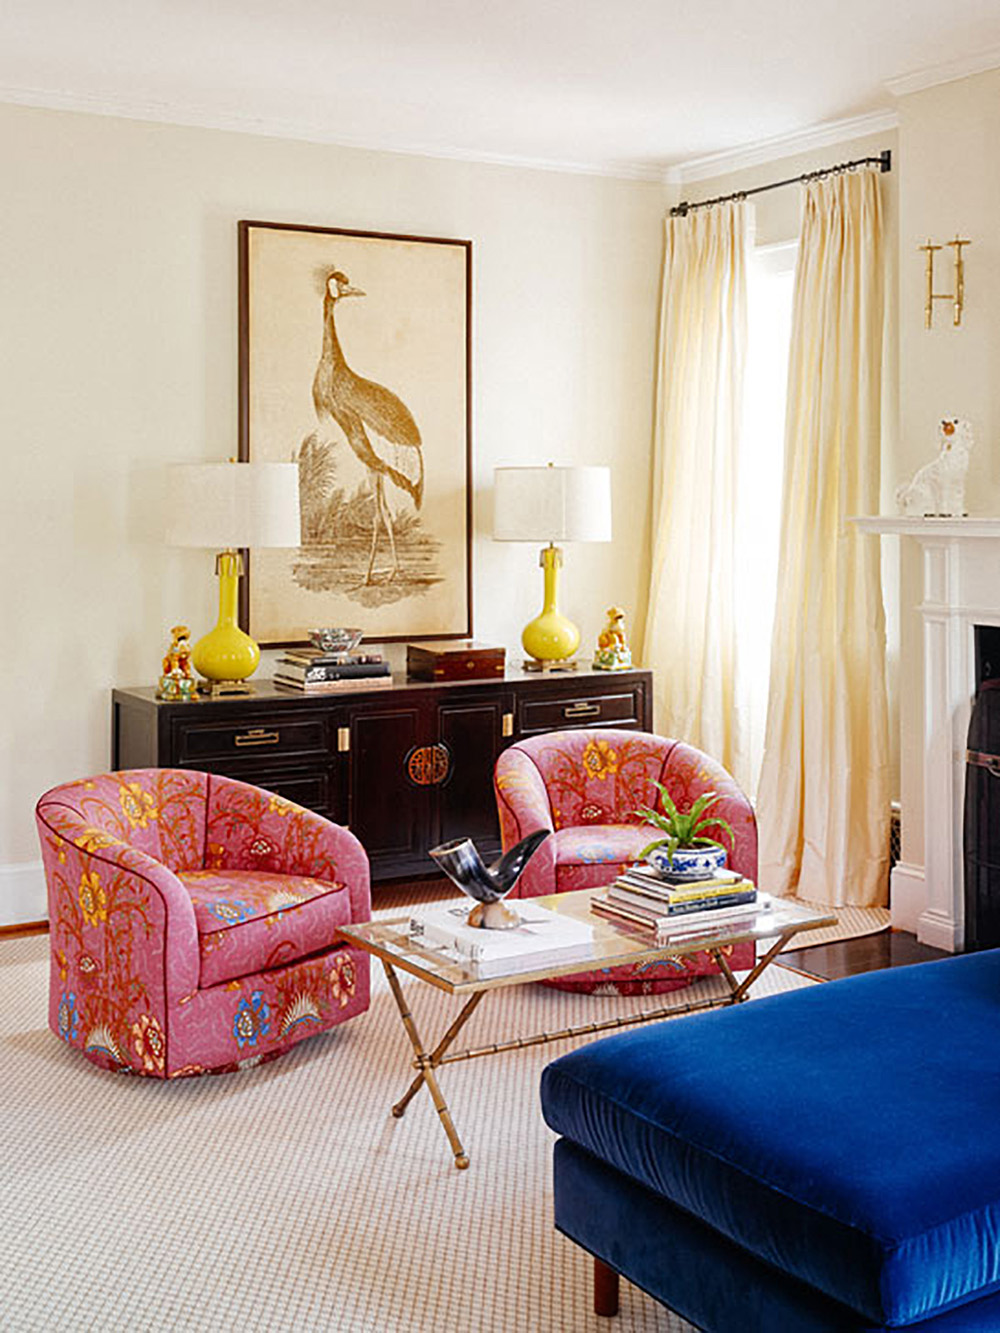 Bold, Fun And Colorful Are A Few Words That Come To Mind When Describing  Charlotte Lucasu0027s Interior Design Aesthetic. She Creates Beautiful And  Vibrant ...